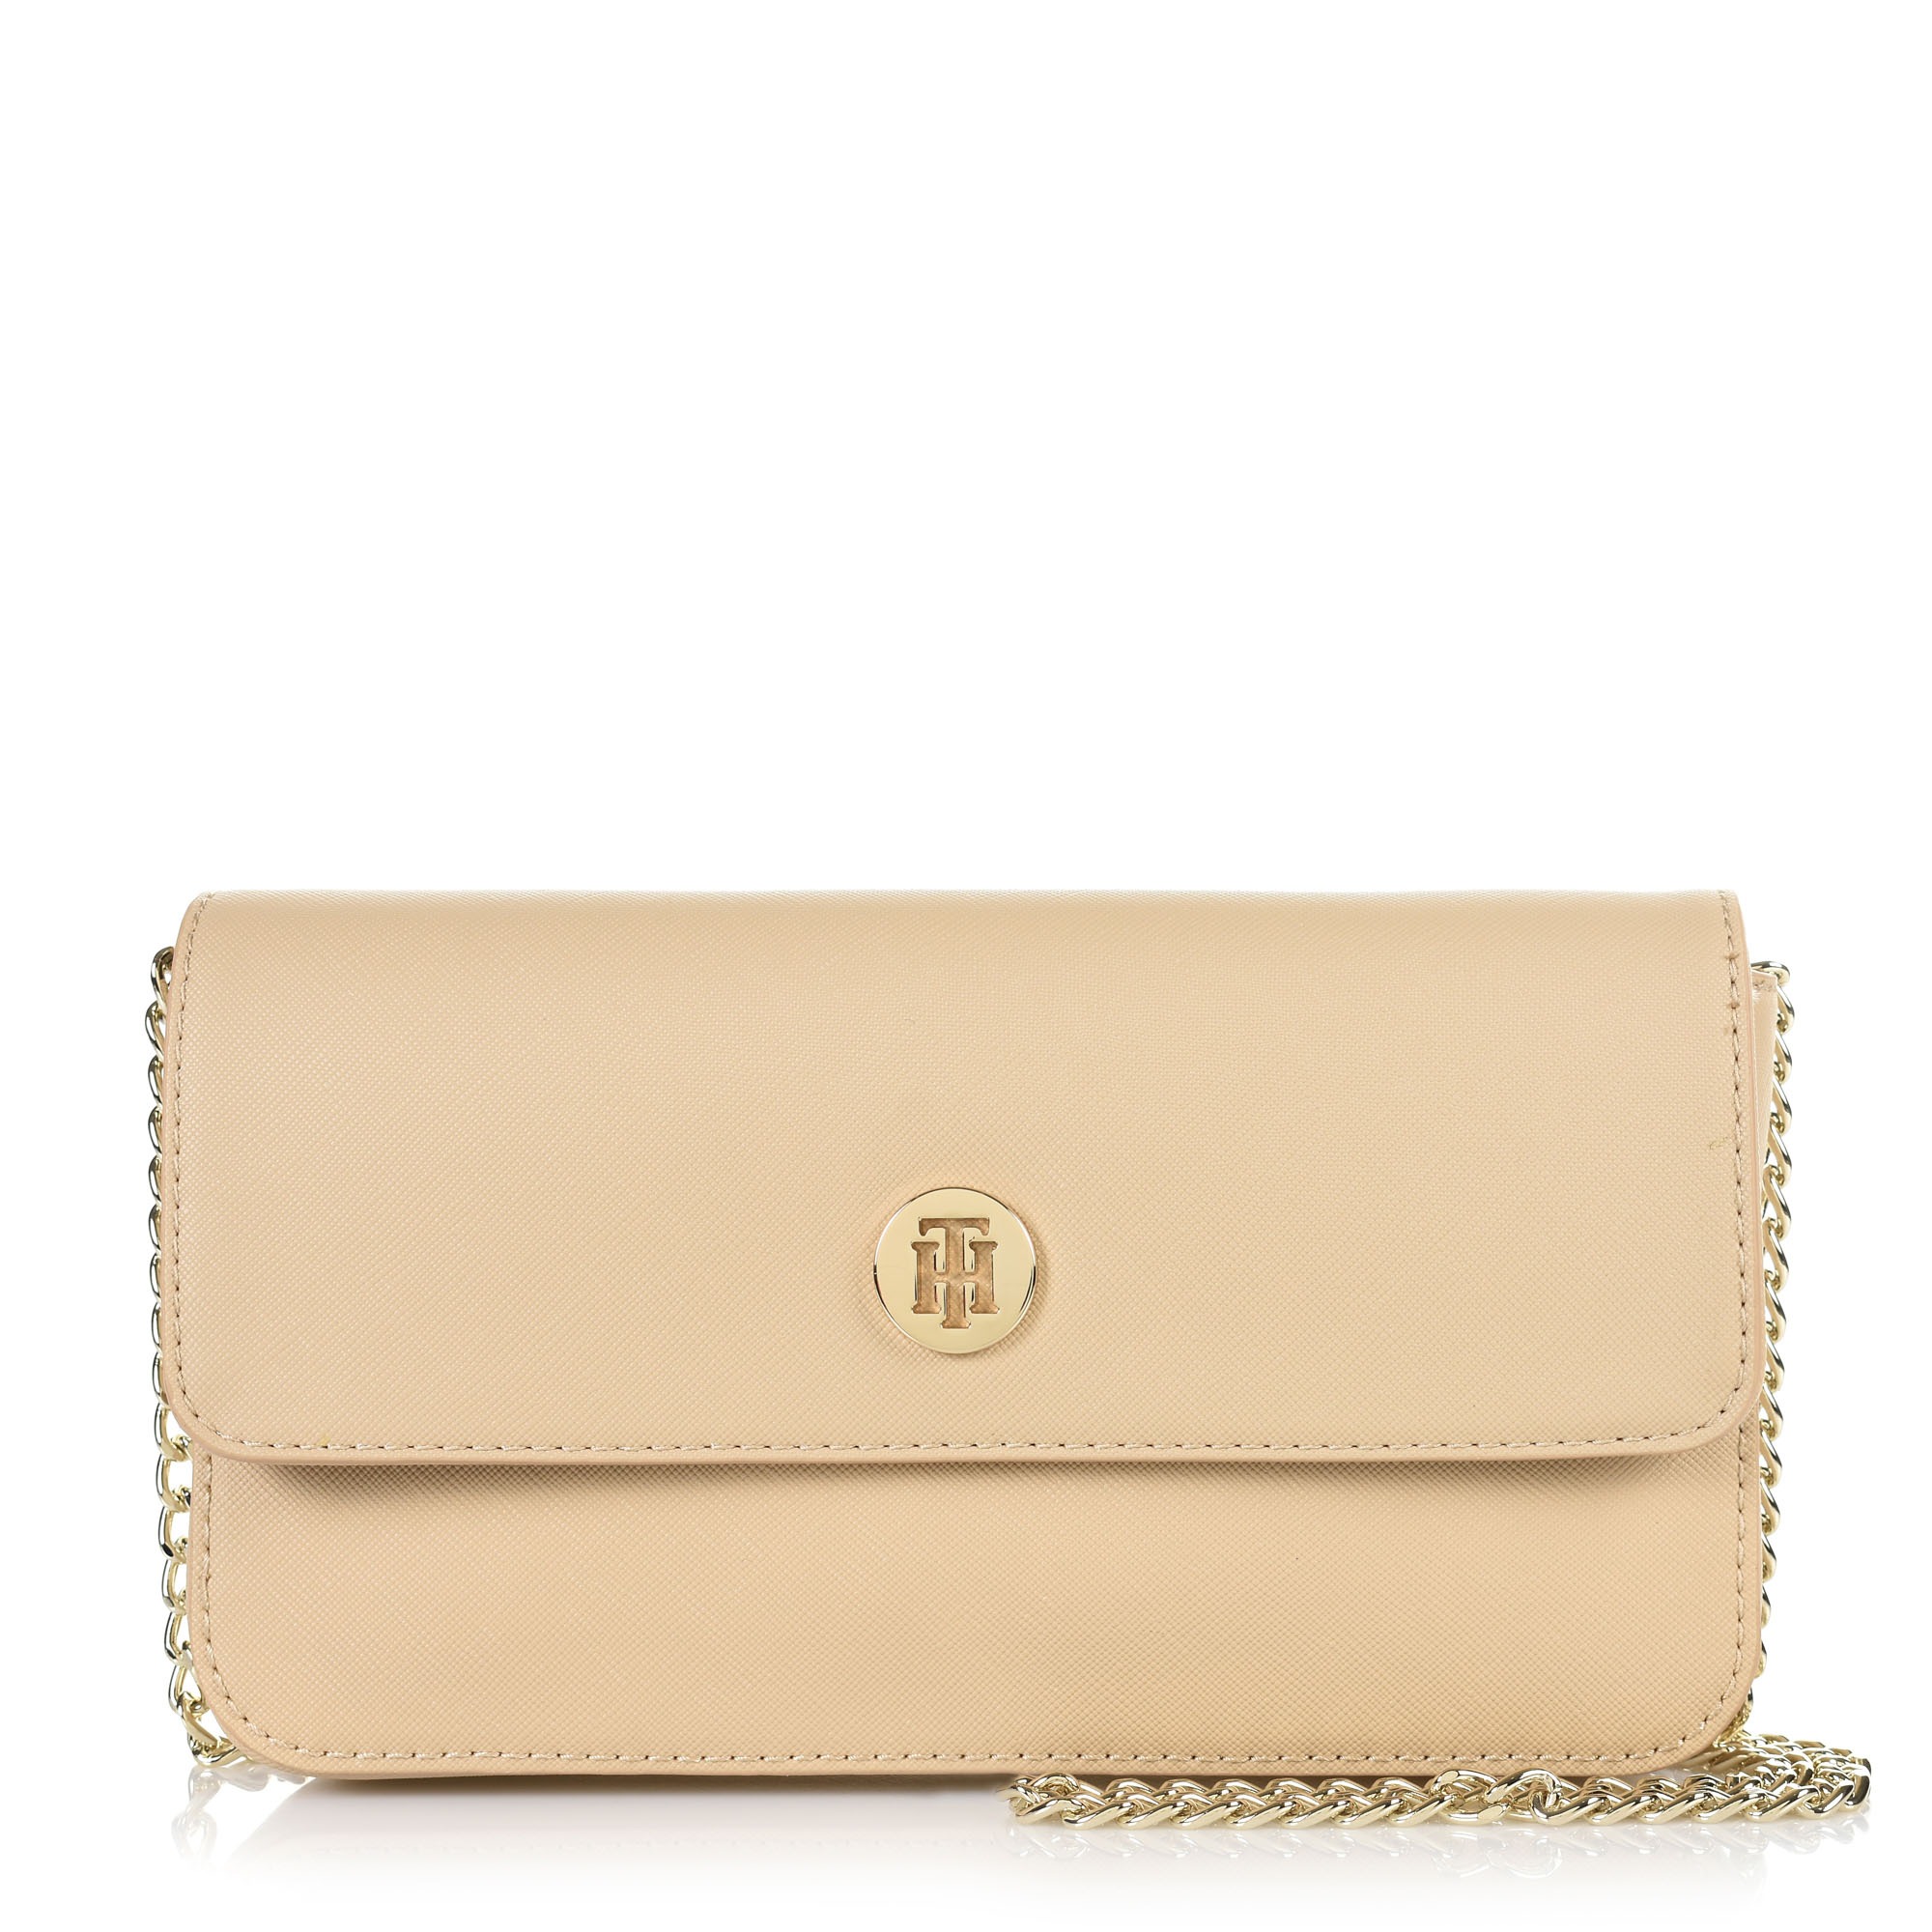 3975f819a5 Brand Bags Τσαντάκι Ώμου-Χιαστί Tommy Hilfiger Honey Mini Crossover  AW0AW06629